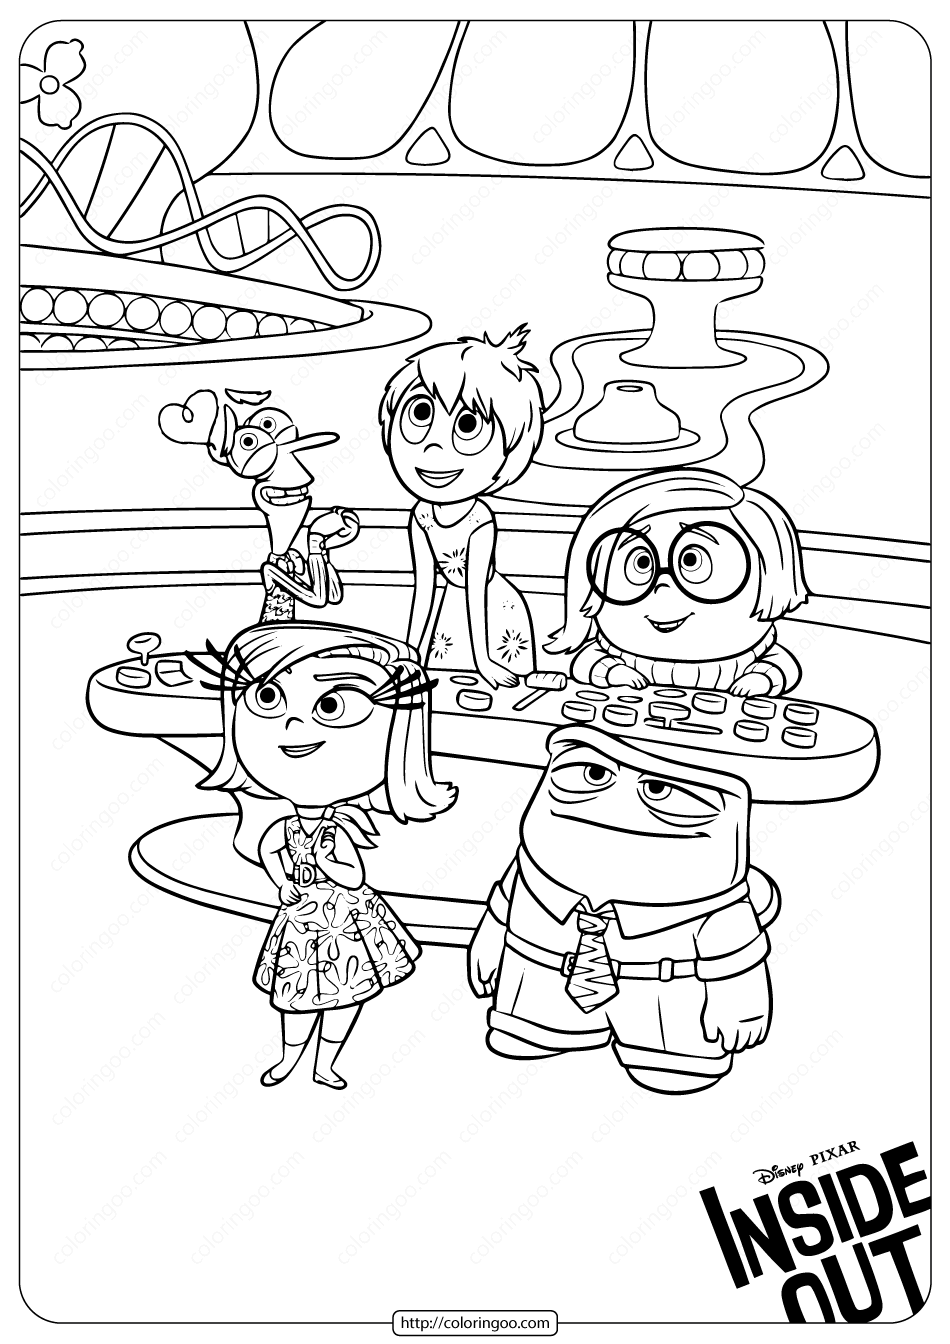 Printable Inside Out Emotions Coloring Pages